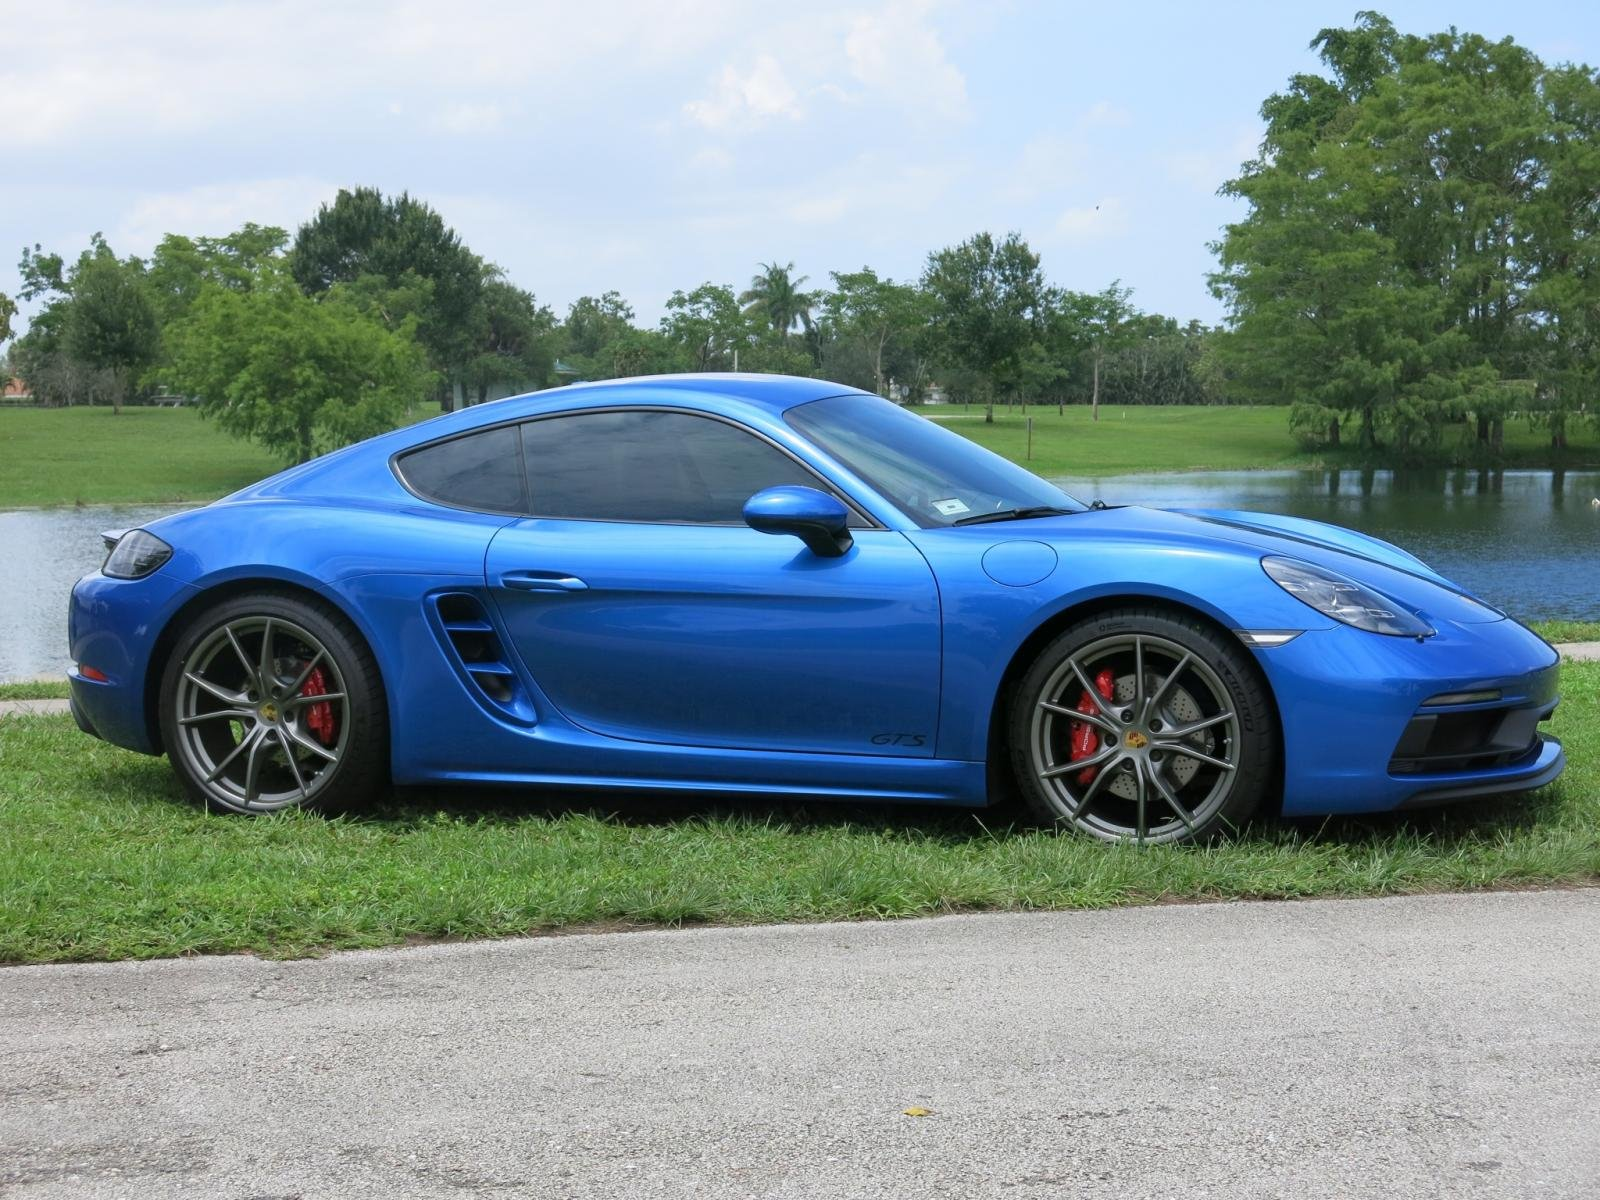 2018 sapphire blue cayman gts porsche 718 forum. Black Bedroom Furniture Sets. Home Design Ideas